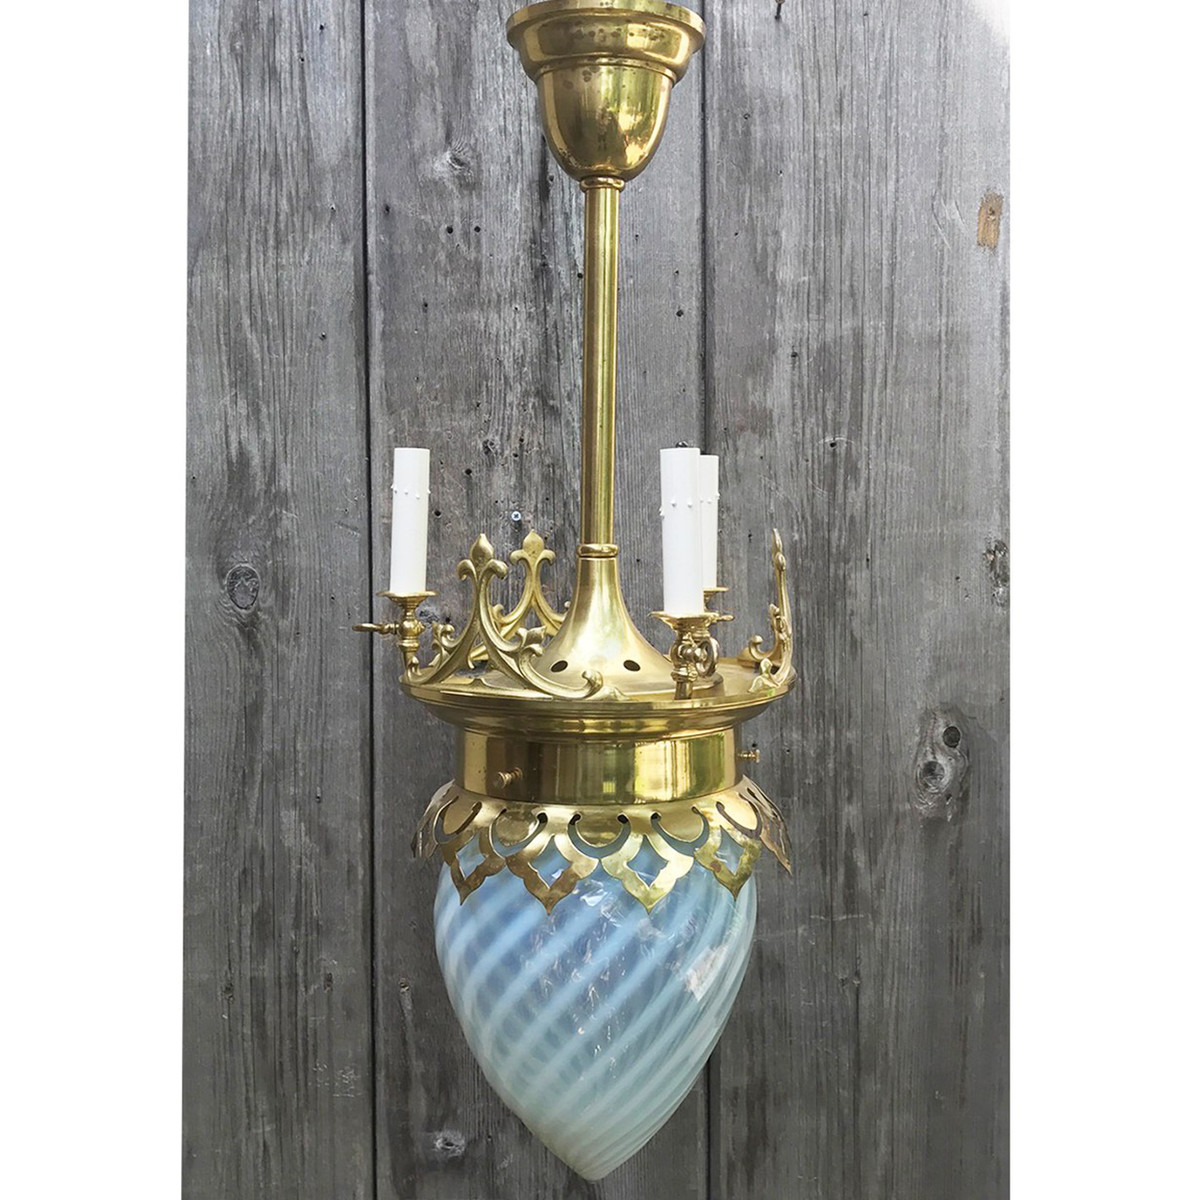 L12044 - Antique Gothic Revival Gas and Electric Ceiling Light Fixture